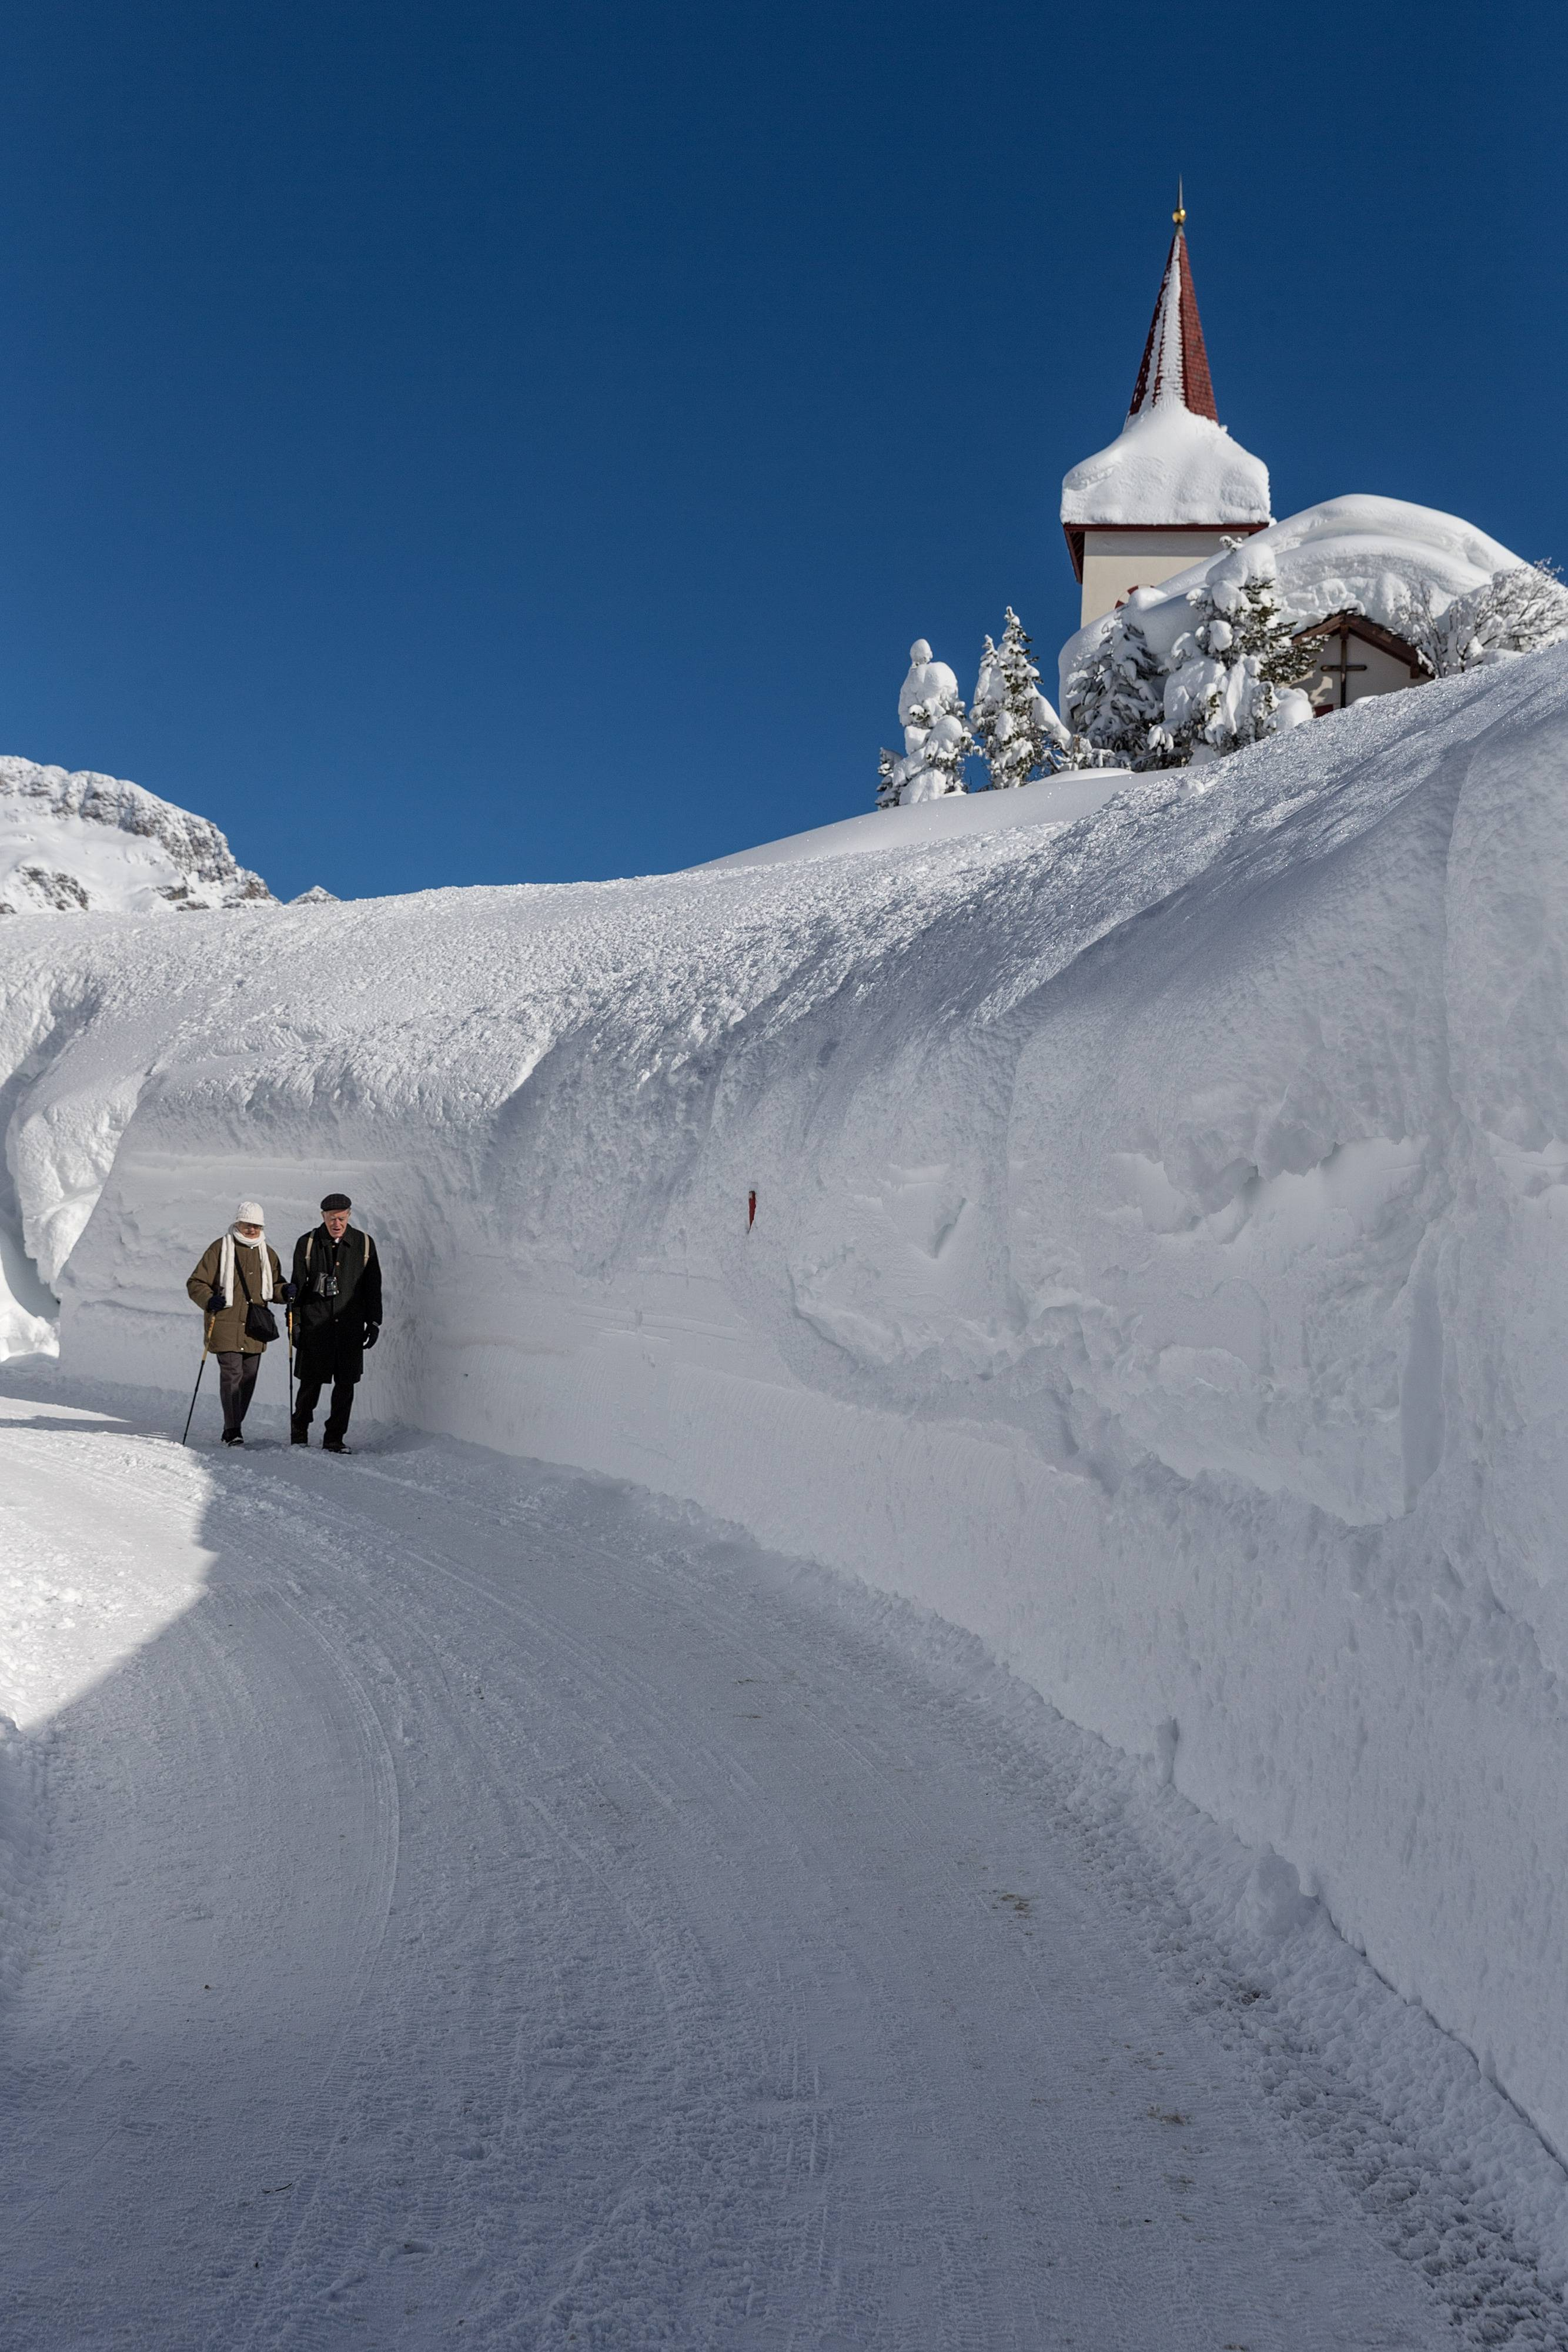 Hikers walk in a snowy street in Maloja, Switzerland Thursday Feb. 6, 2014. Weather forecasts predict changeable weather.